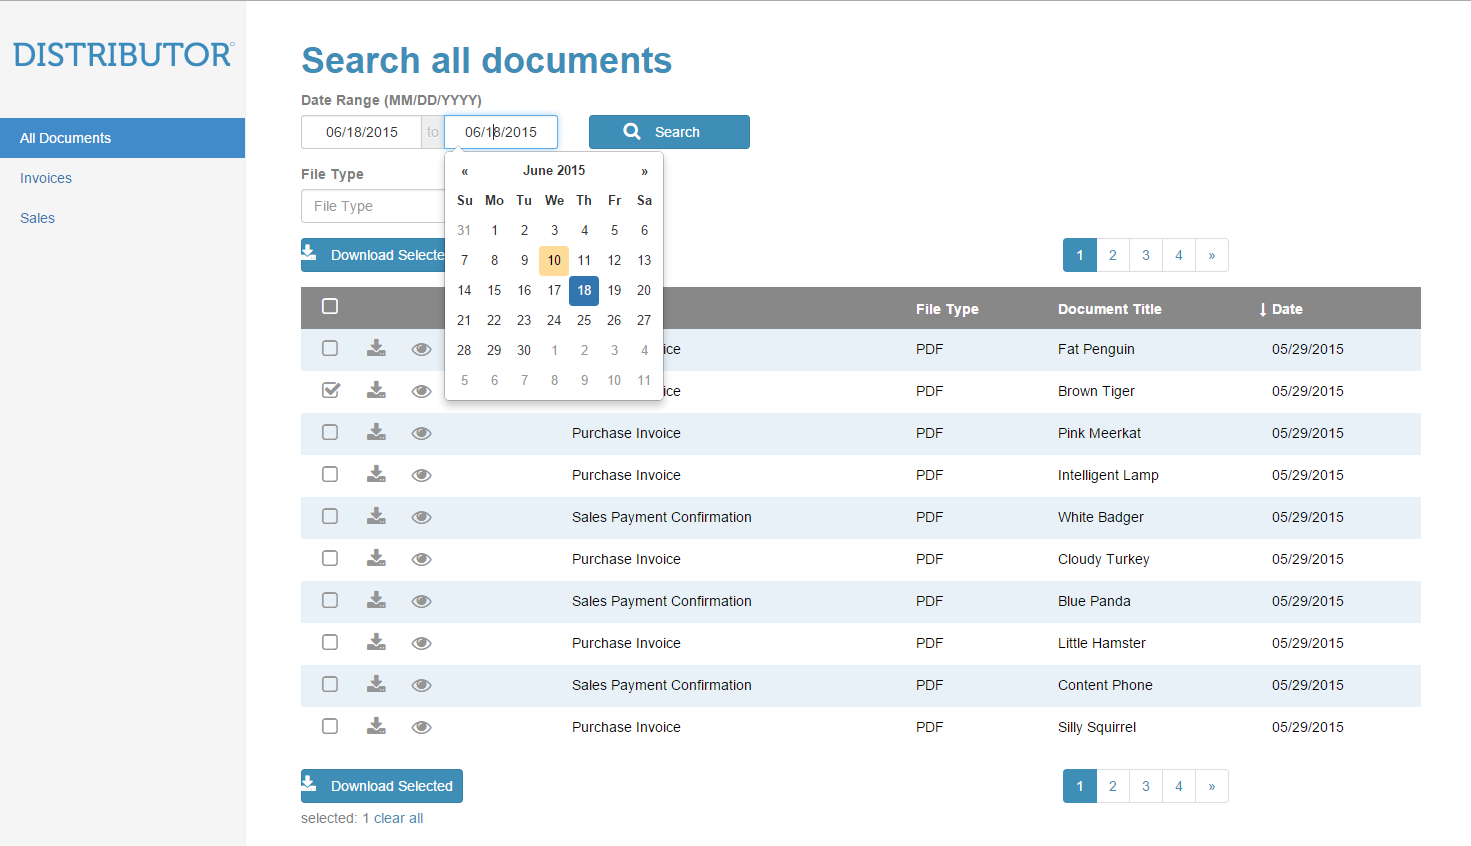 Datepickers make it easier to select document date ranges.